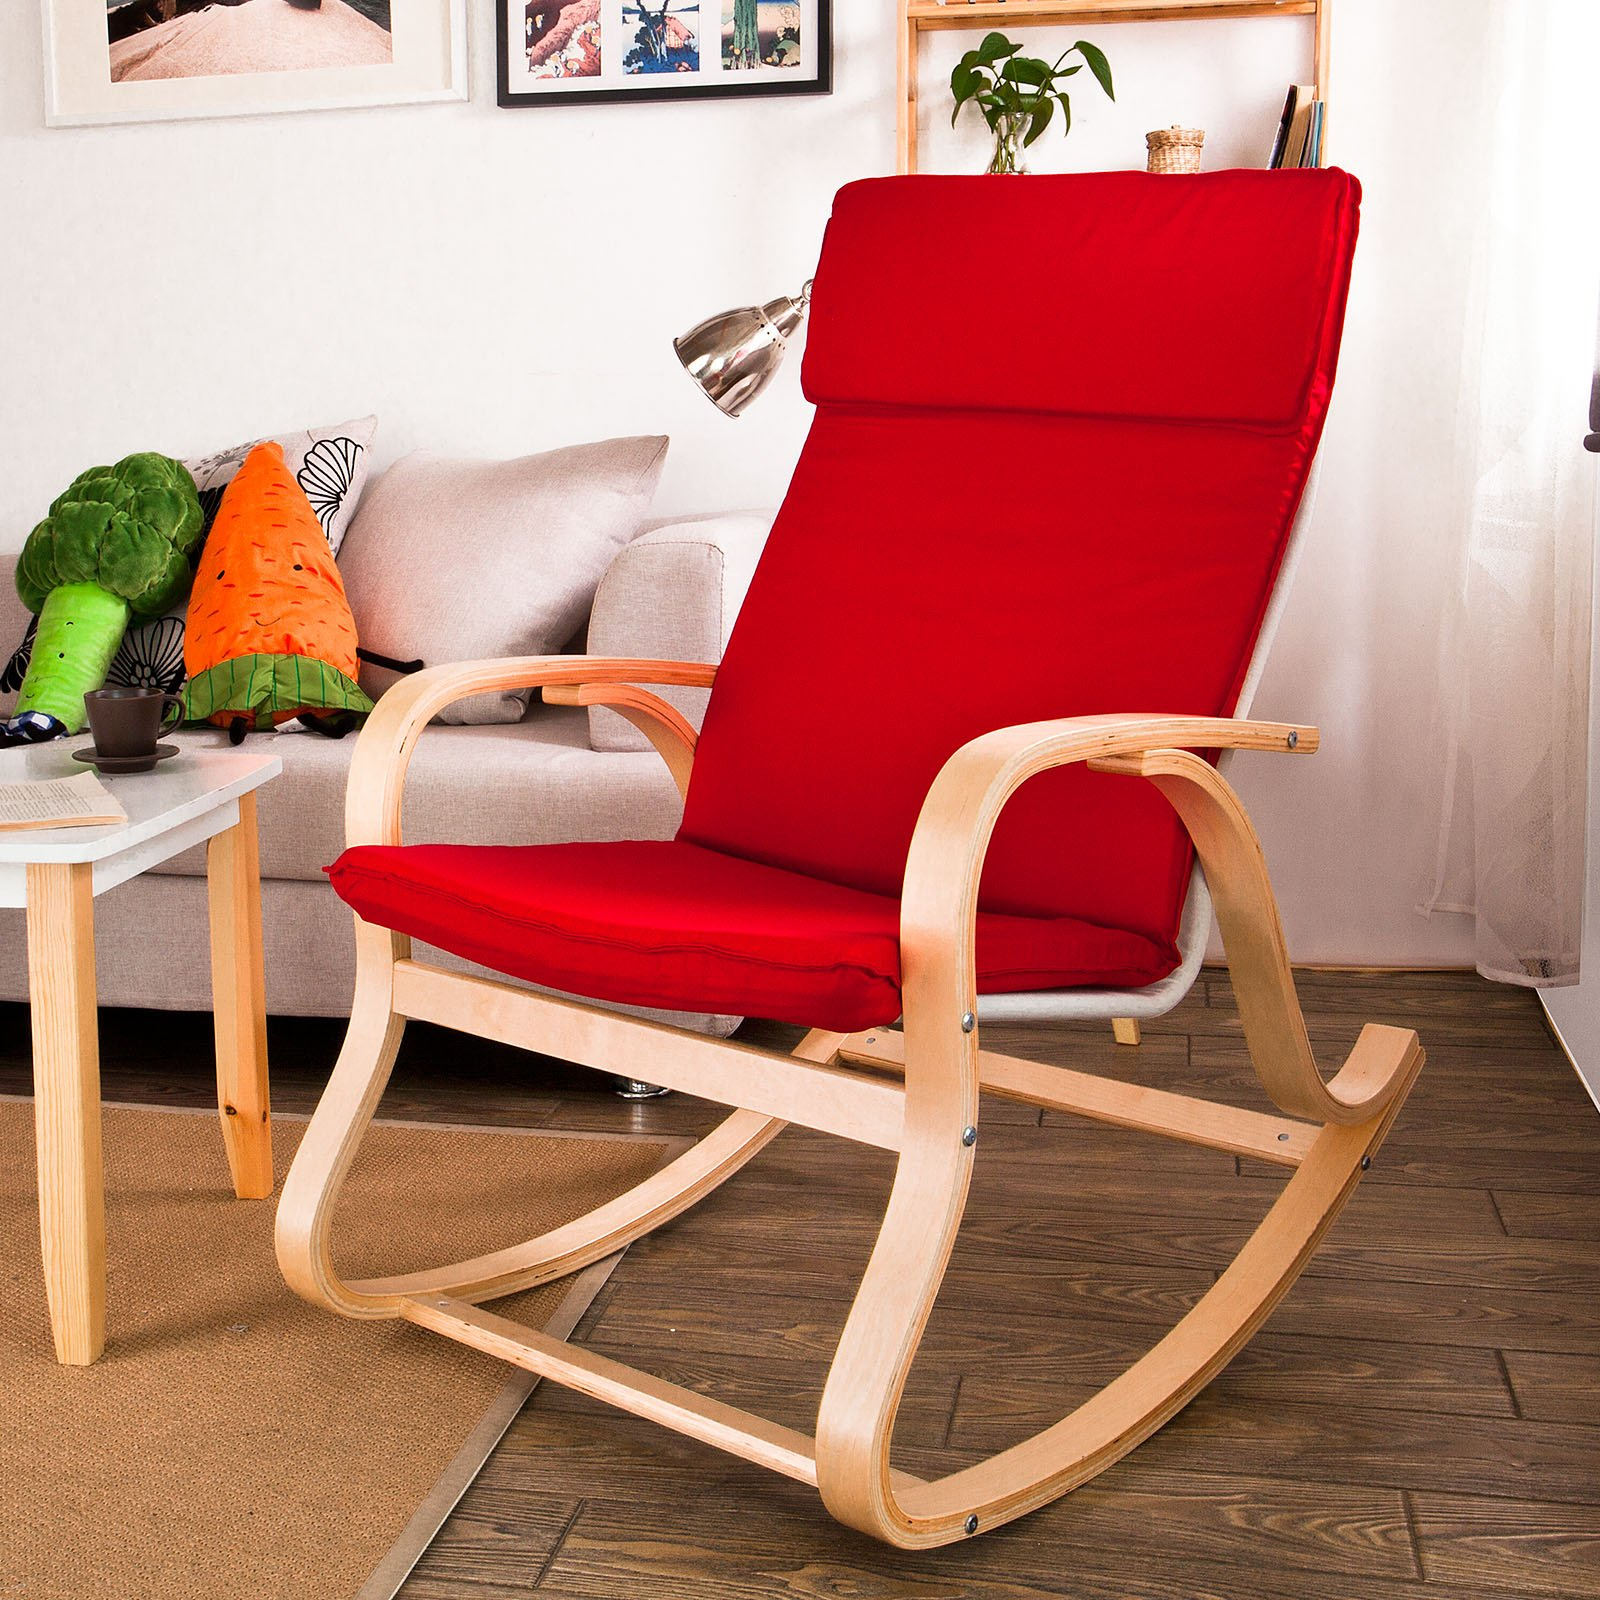 Haotian FST15-R, Comfortable Relax Rocking Chair, Lounge Chair Relax Chair with Cotton Fabric Cushion …